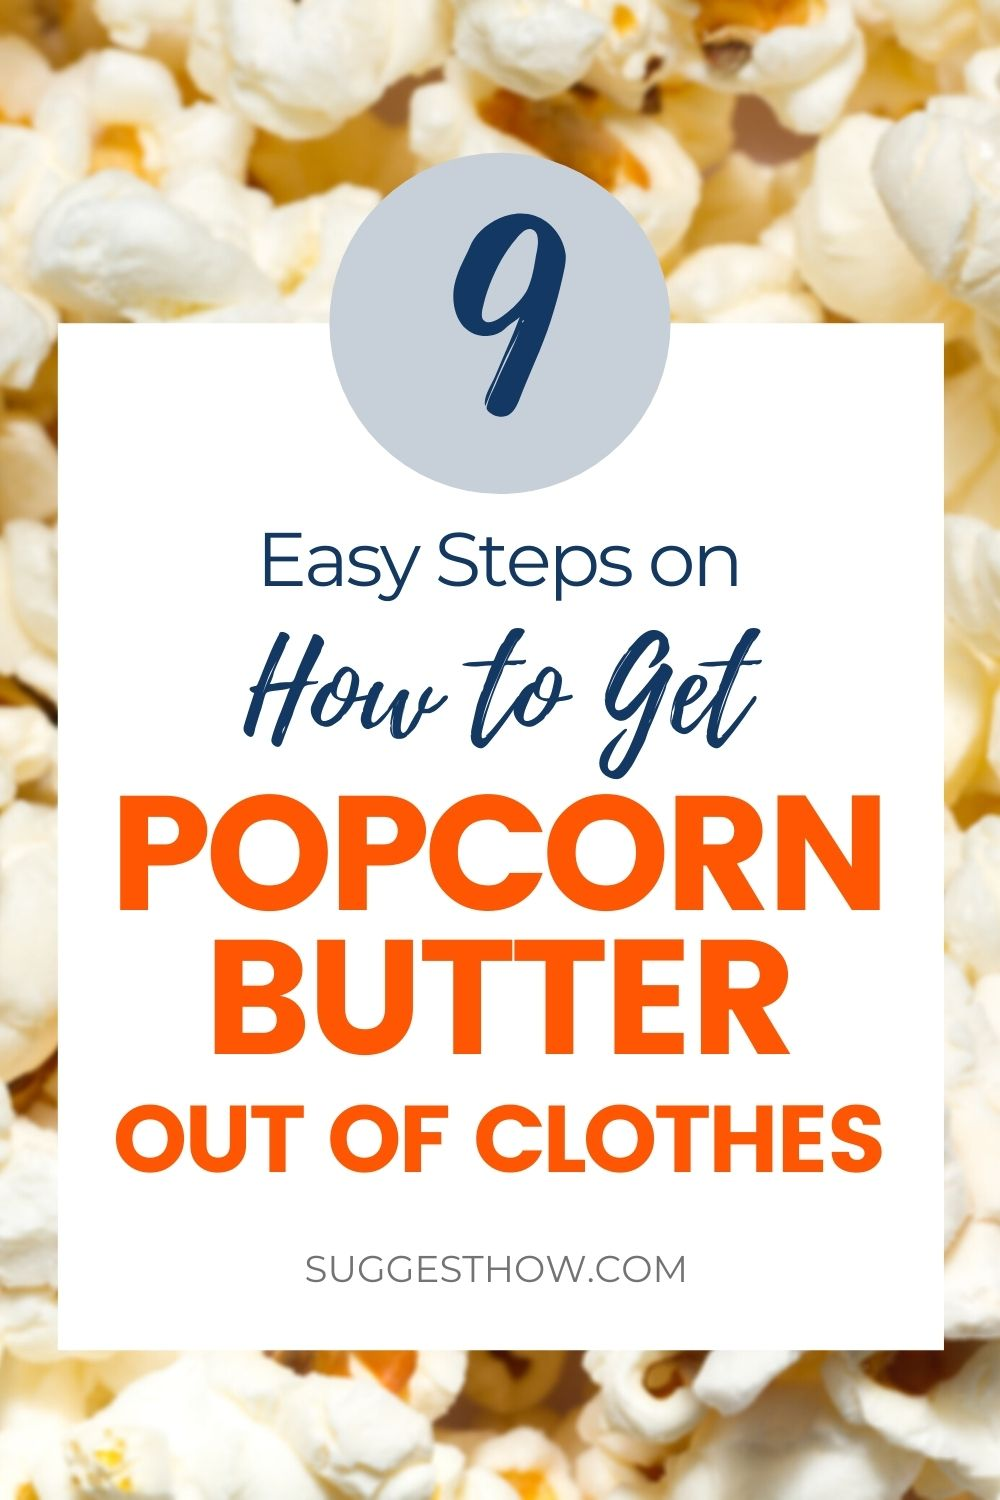 e0dc68db853cc40886804329de9c506b - How To Get Popcorn Butter Stains Out Of Clothes